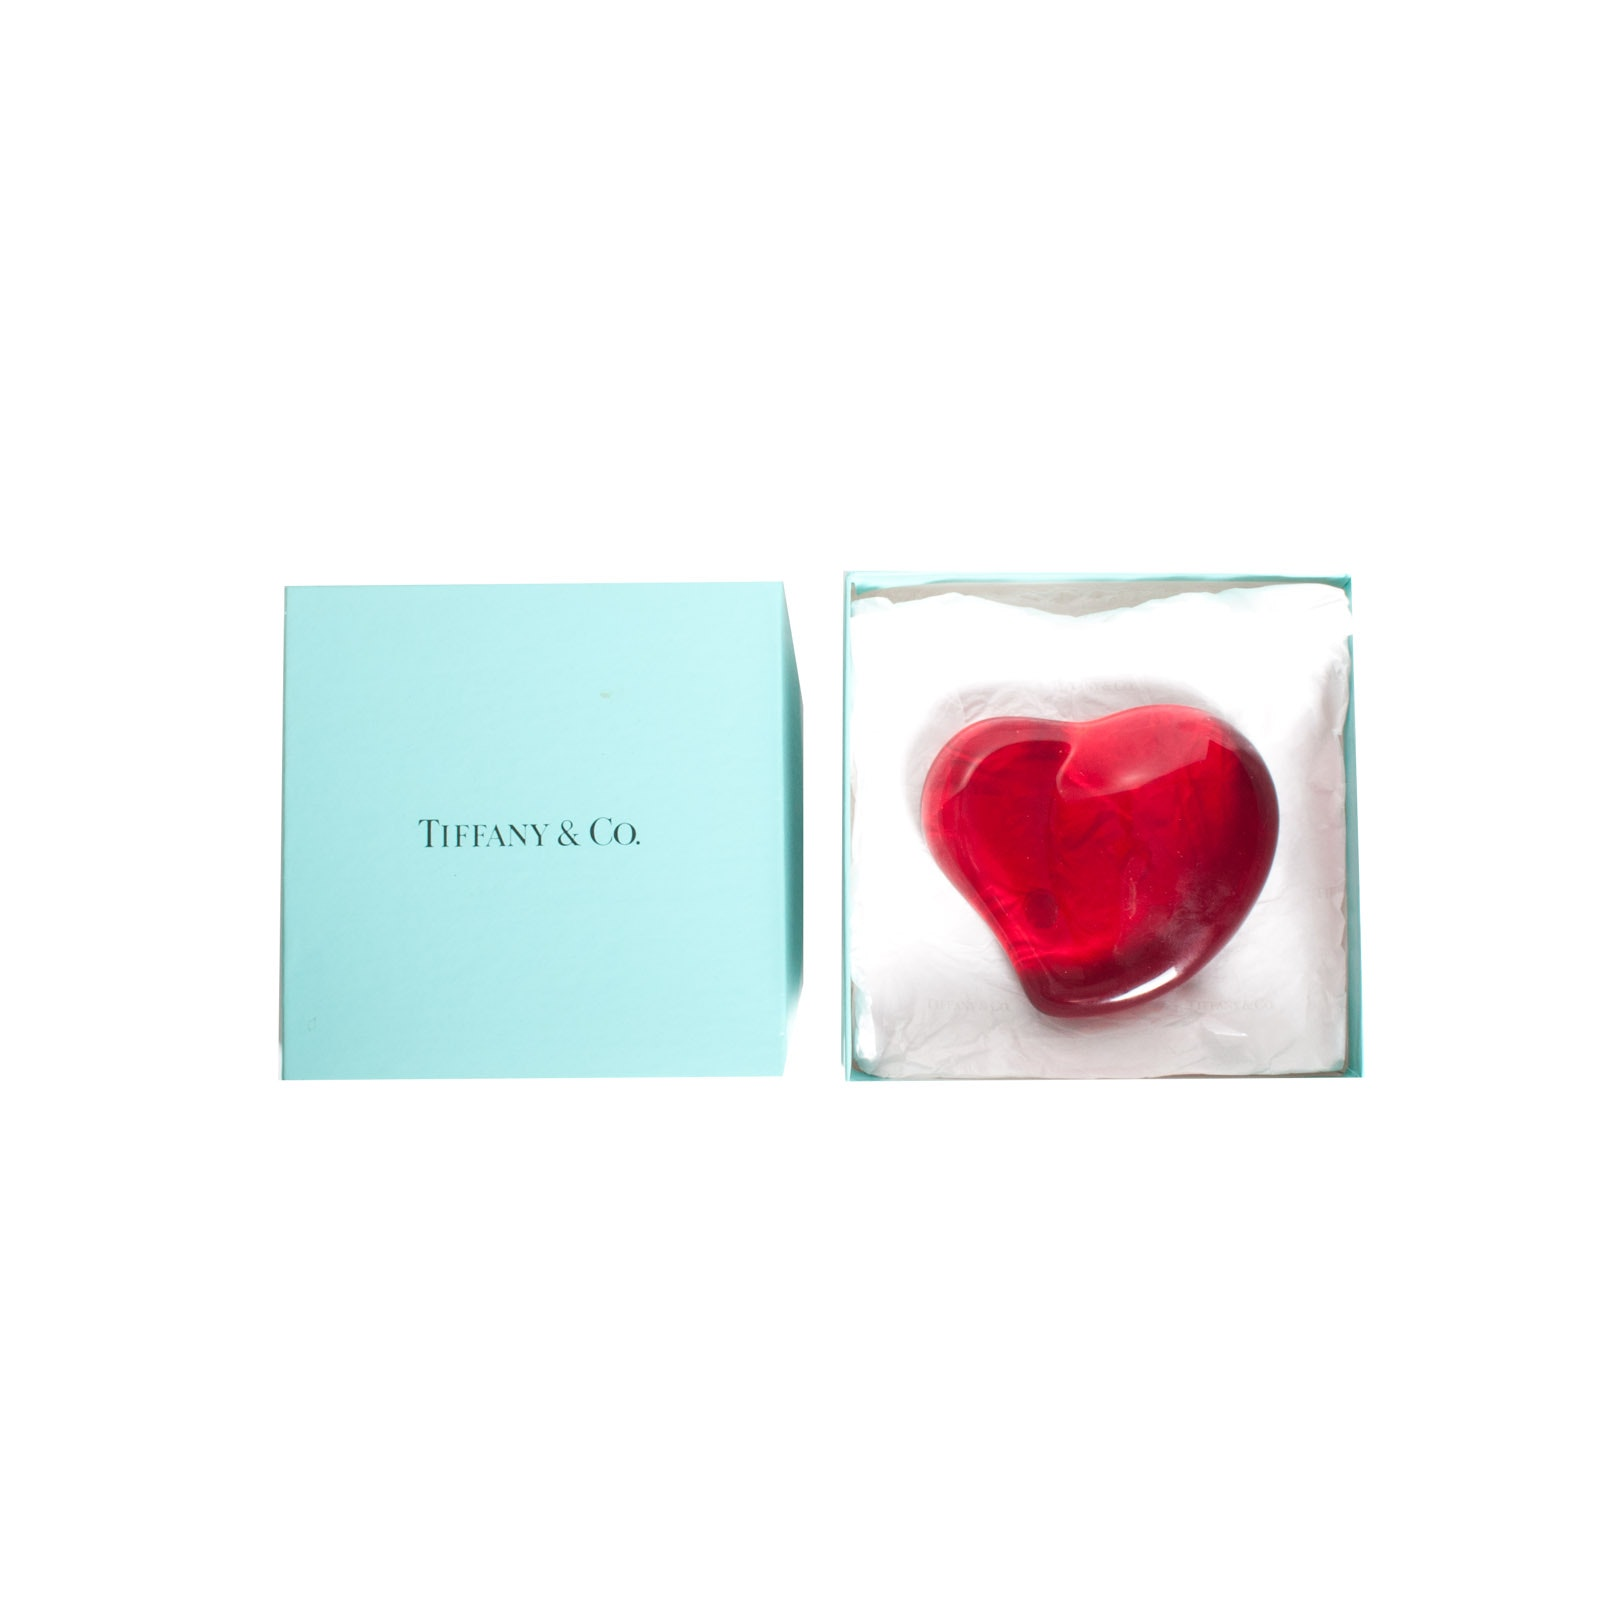 Elsa Peretti for Tiffany & Co. Red Glass Heart Paperweight